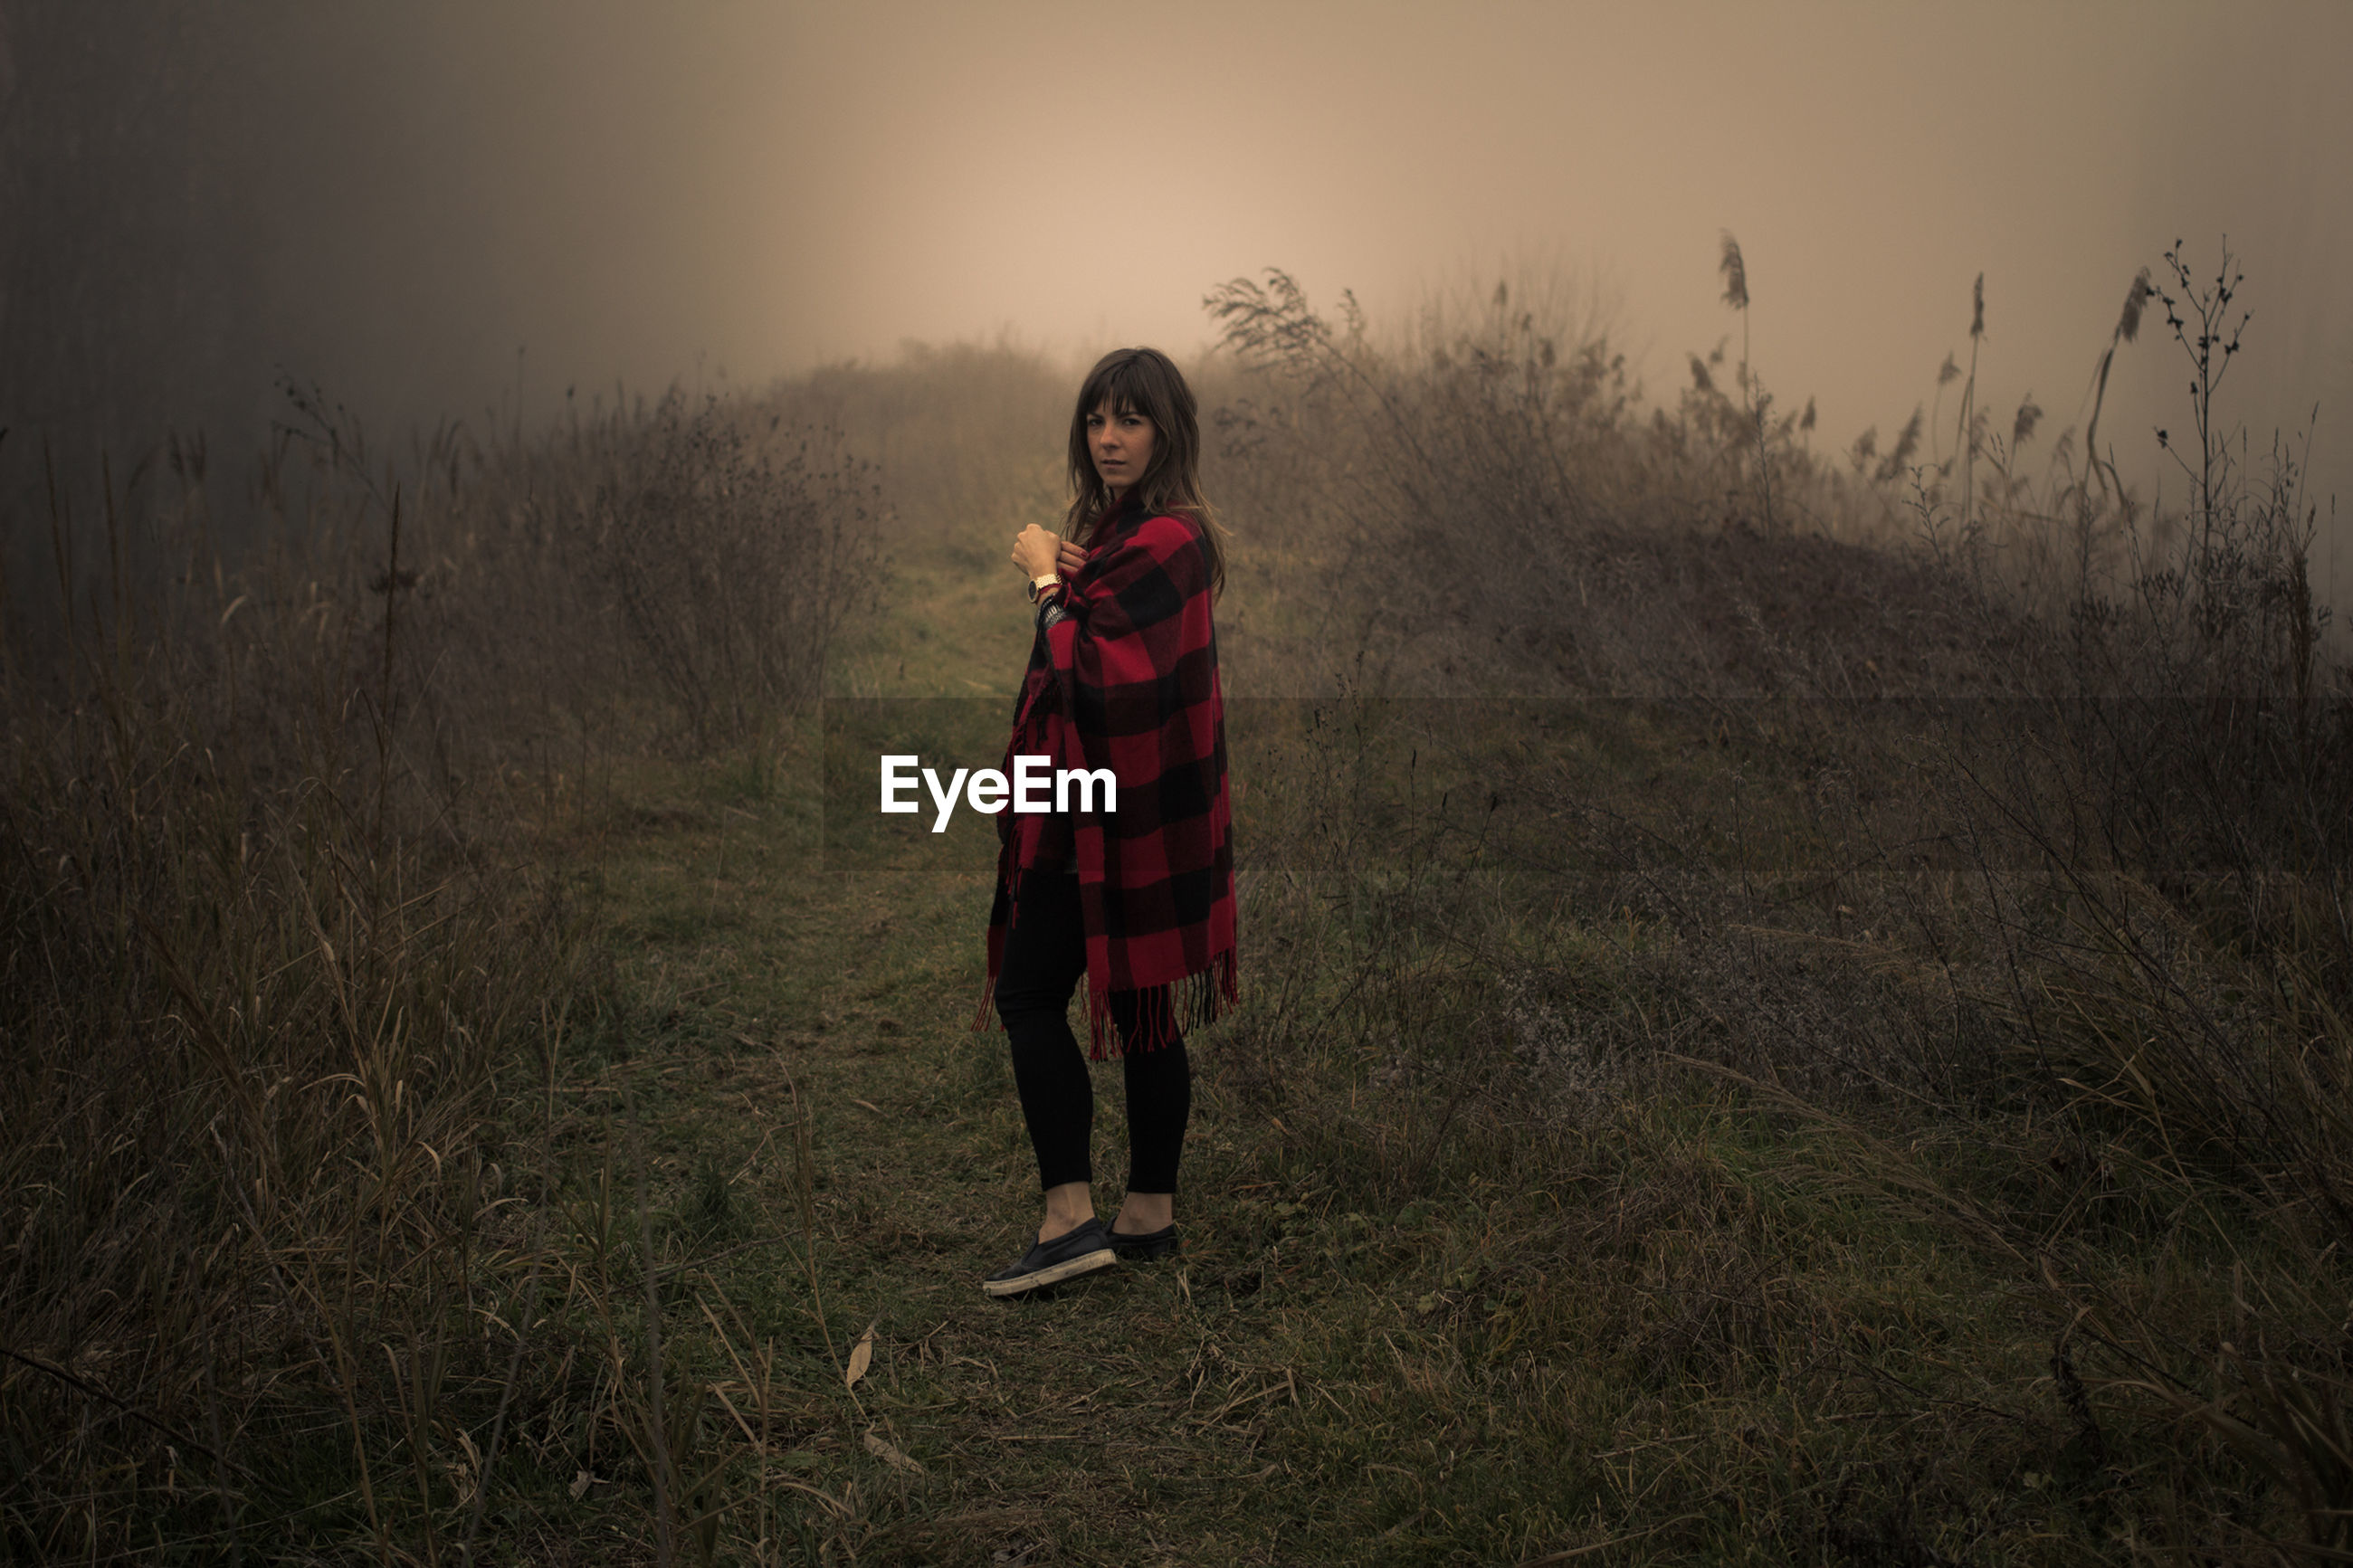 Young woman standing on grassy field during foggy weather